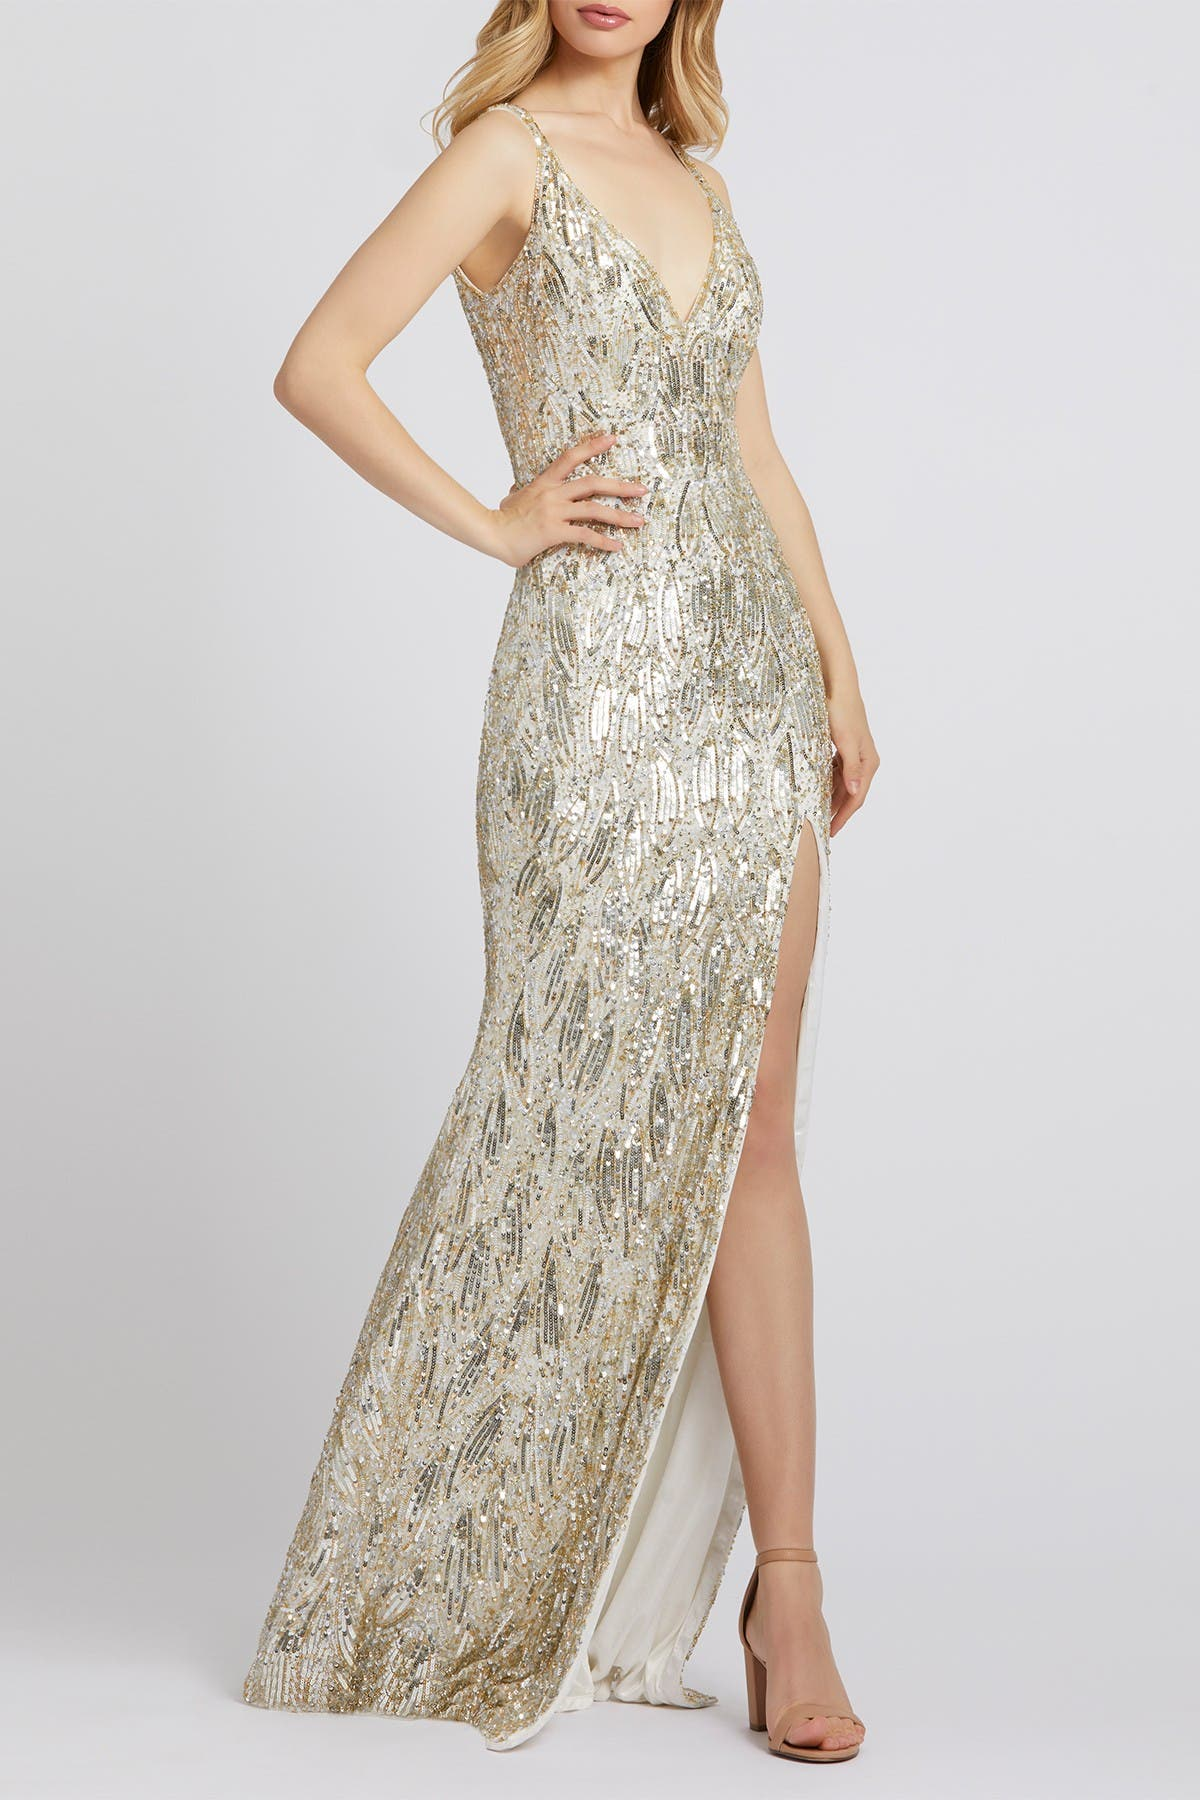 Image of Mac Duggal V-Neck Beaded Sequin Slit Sheath Gown